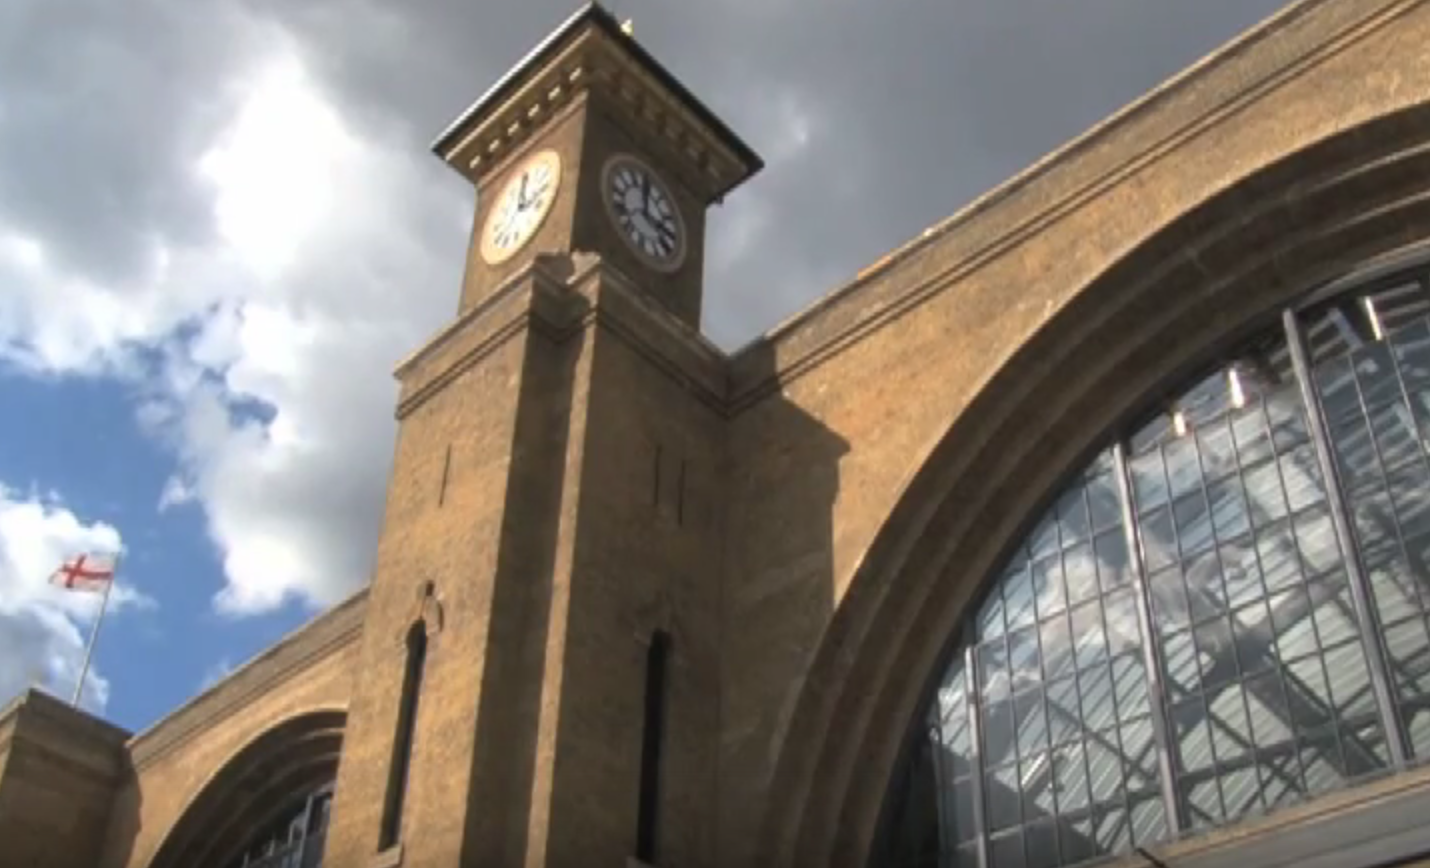 Students Studying Abroad in London acclimate to Kings Cross Station versus SEPTA.